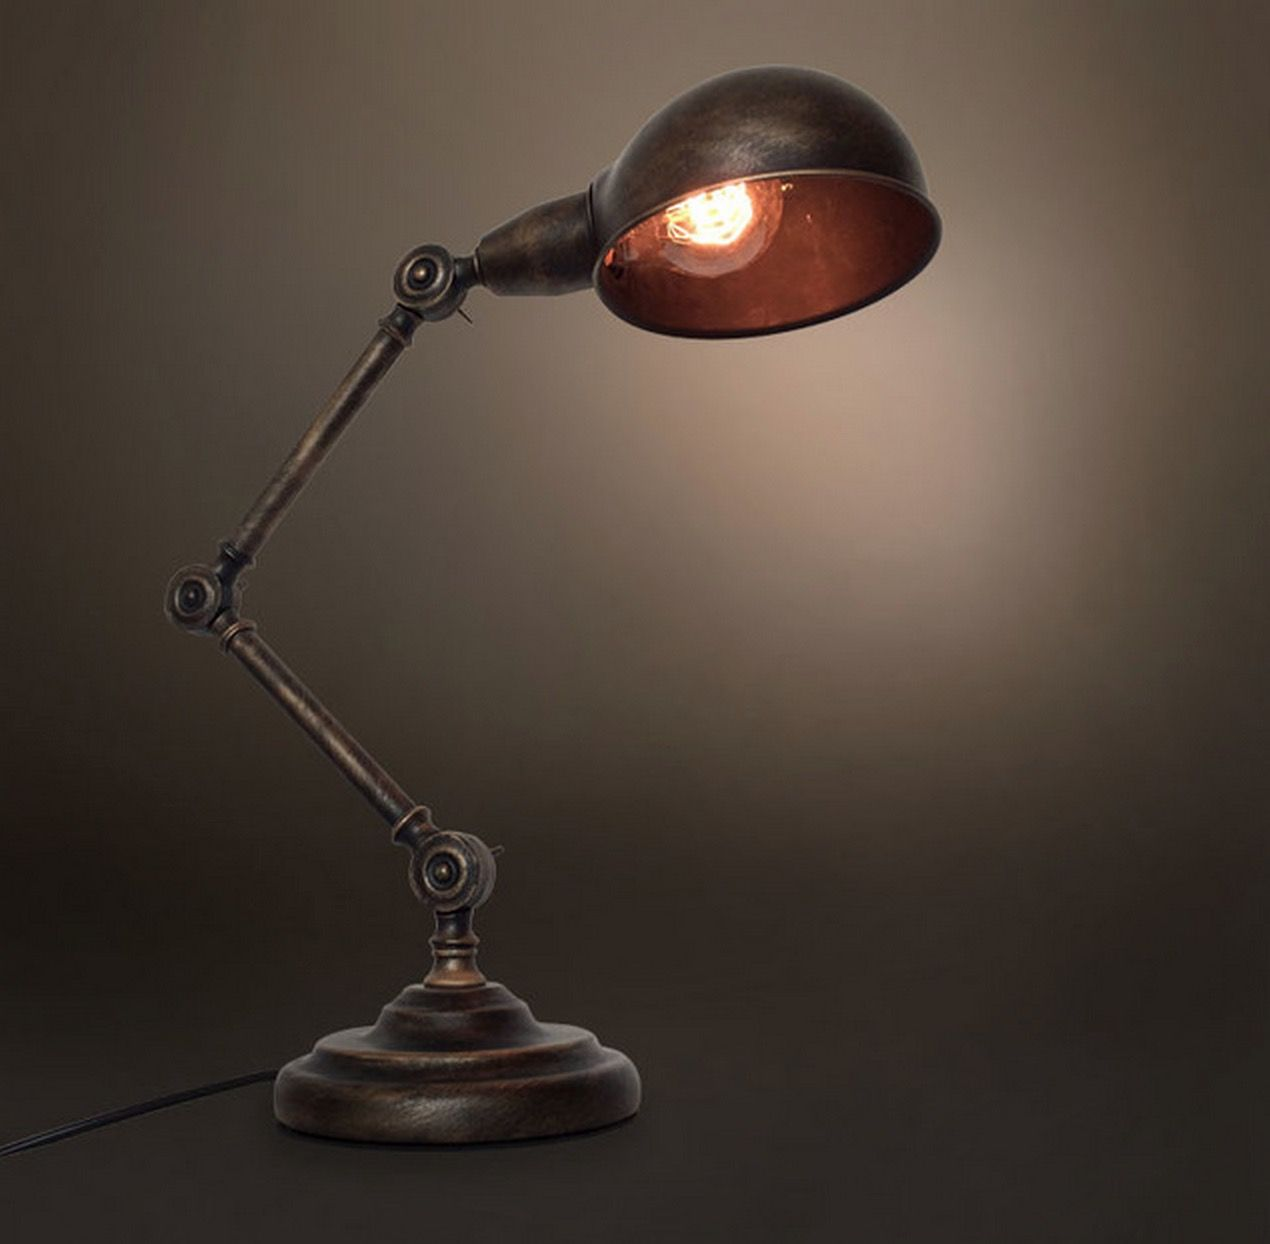 Buy A Custom Vintage Industrial Light The Medieval Retro